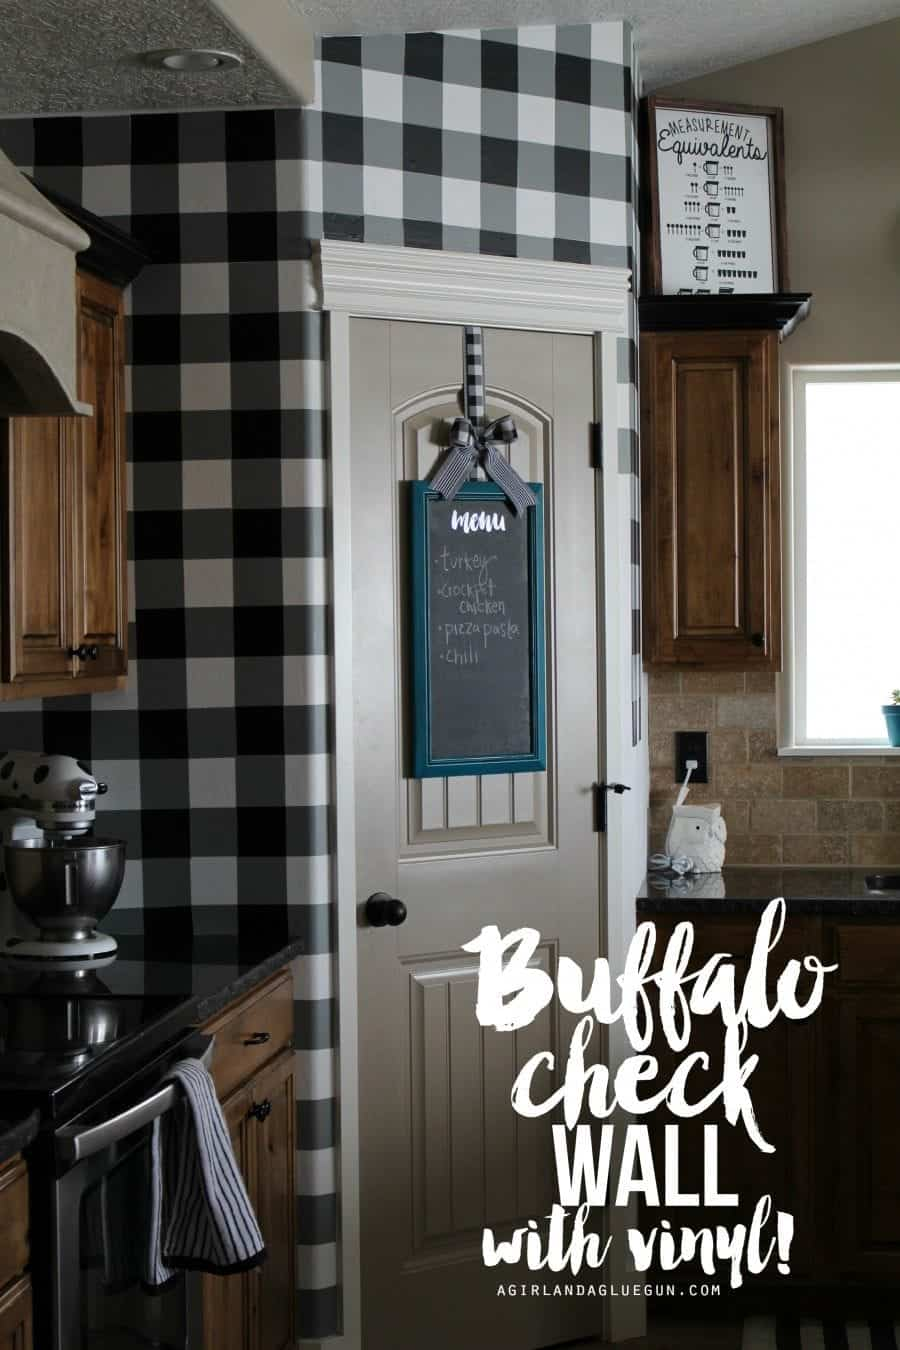 buffalo-check-wall-with-expressions-vinyl-900x1350